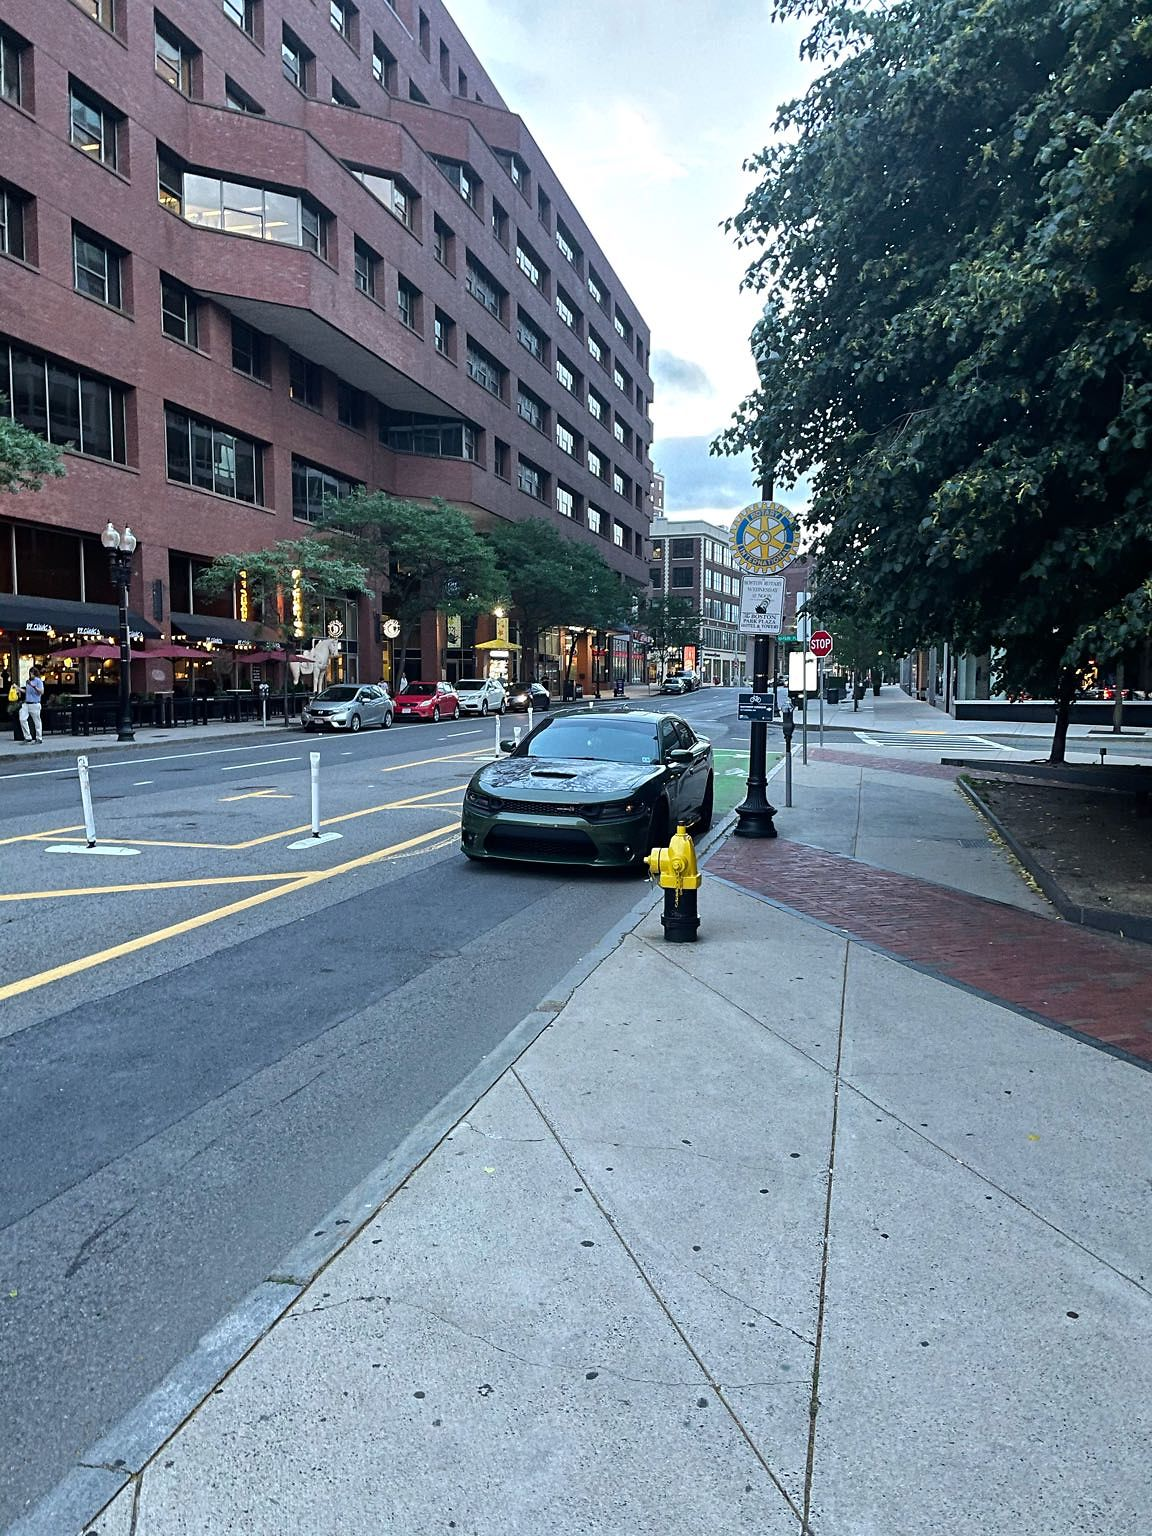 Asshole from NJ doesn't know how to read a parking sign. Tow them out of the city. Blocking bike lane.